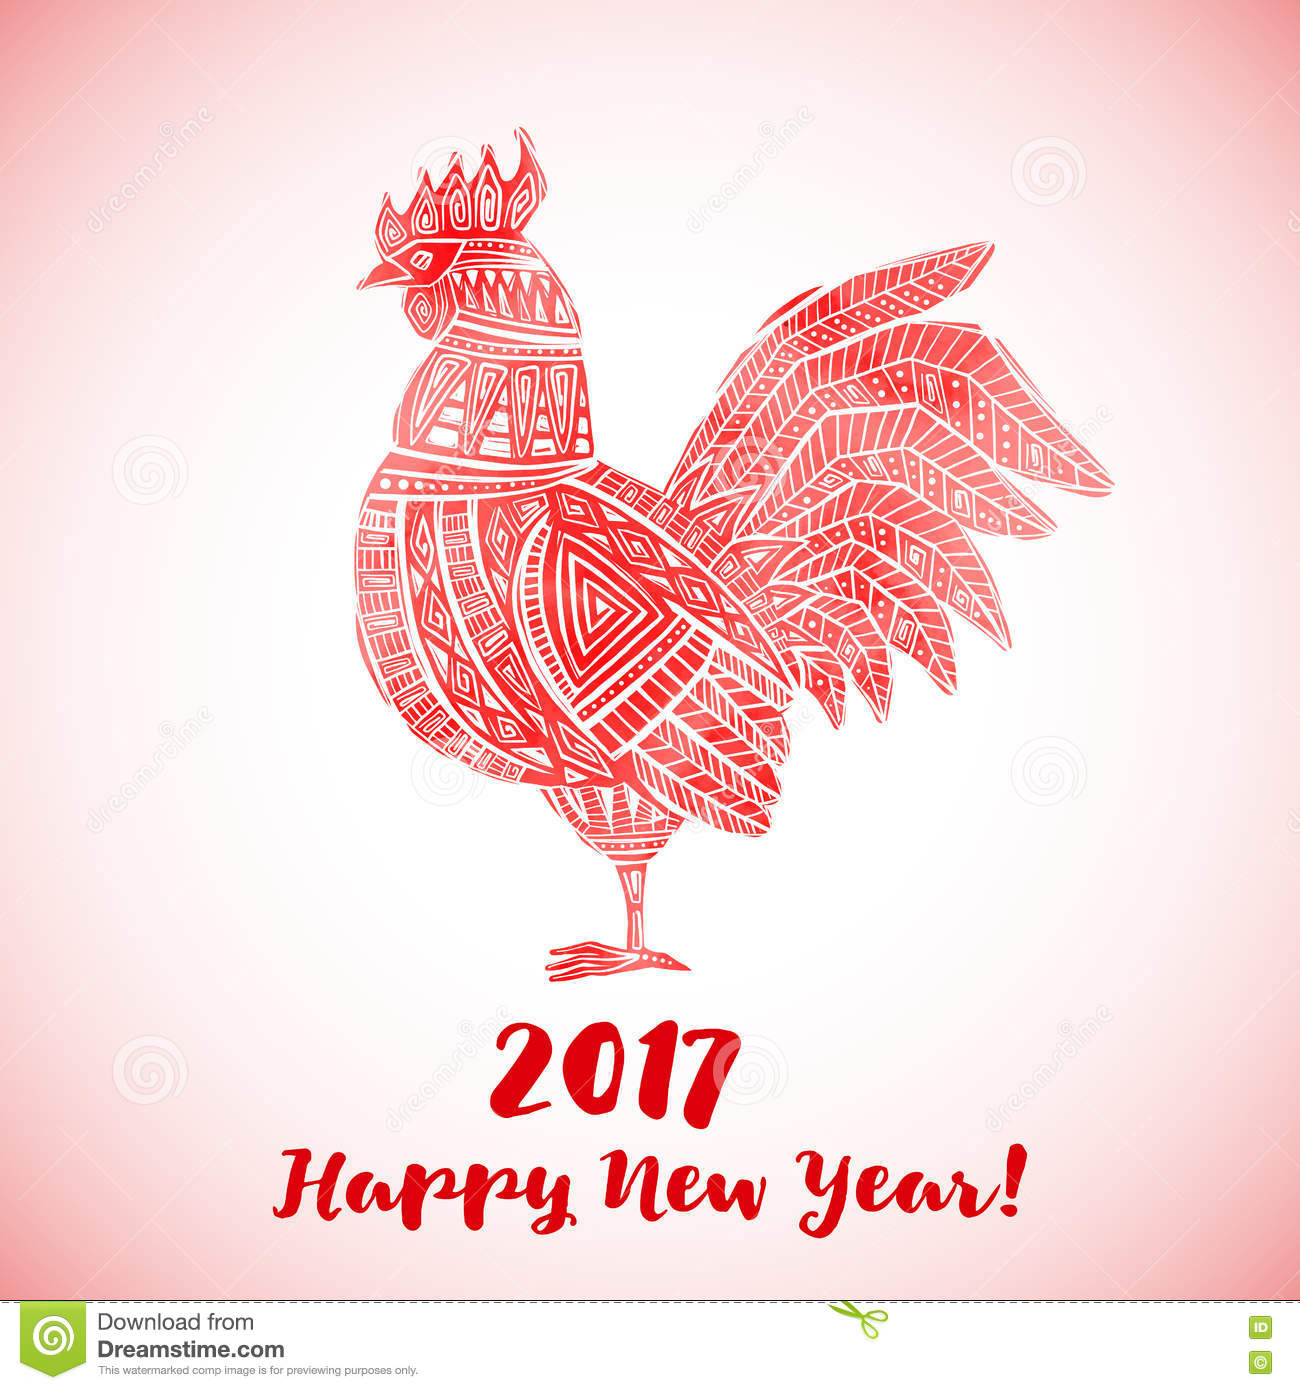 New year greeting card with red rooster stock vector new year greeting card with red rooster kristyandbryce Gallery